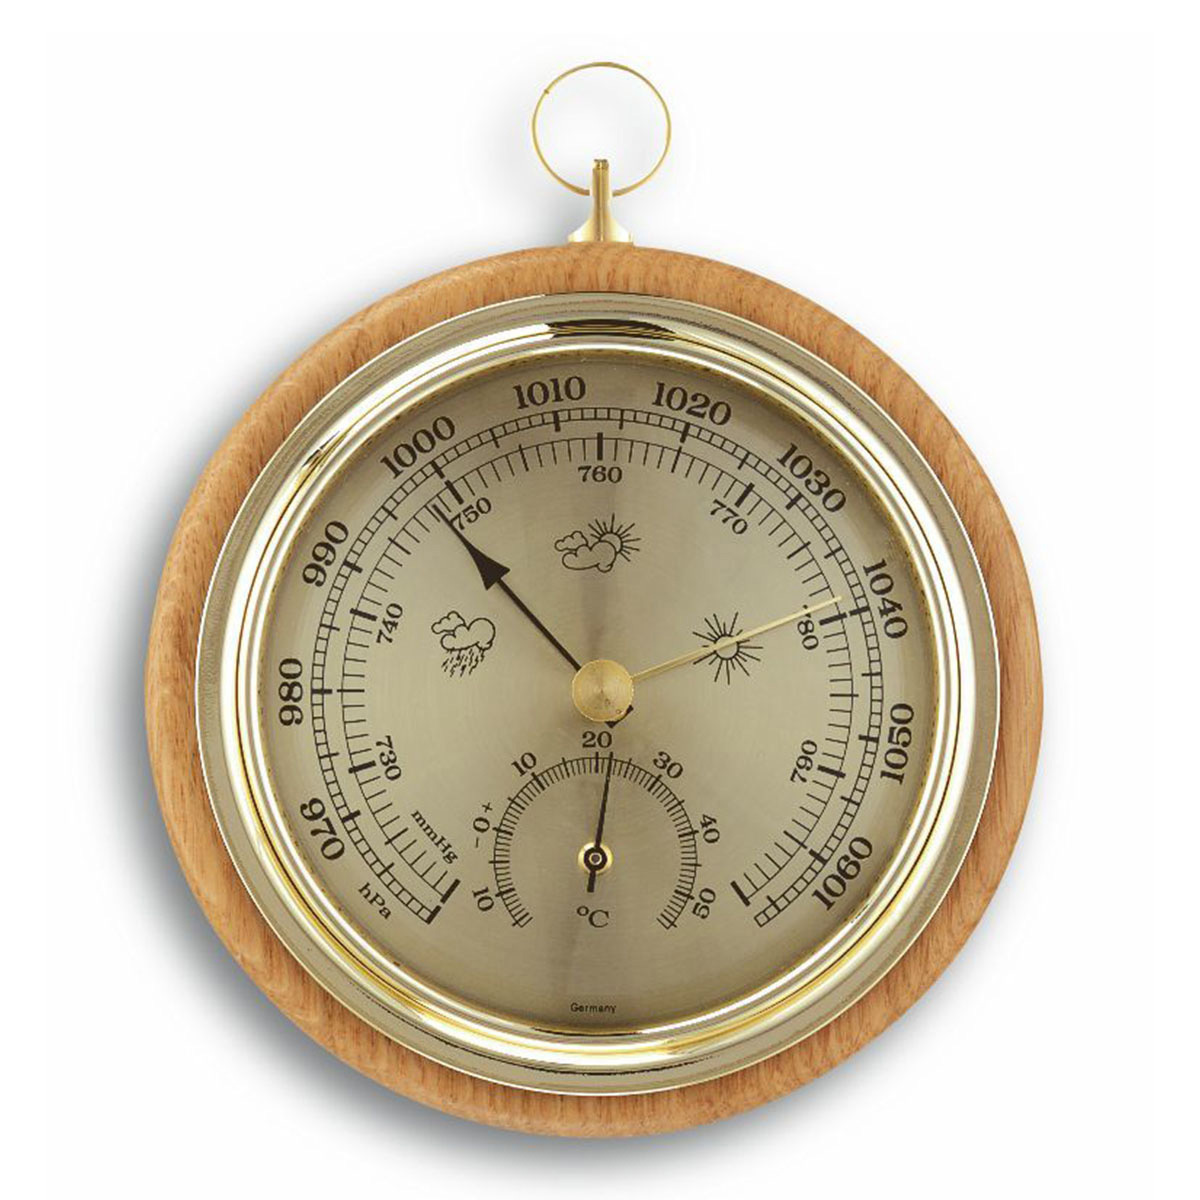 45-1000-05-analoges-thermo-barometer-massivholz-1200x1200px.jpg